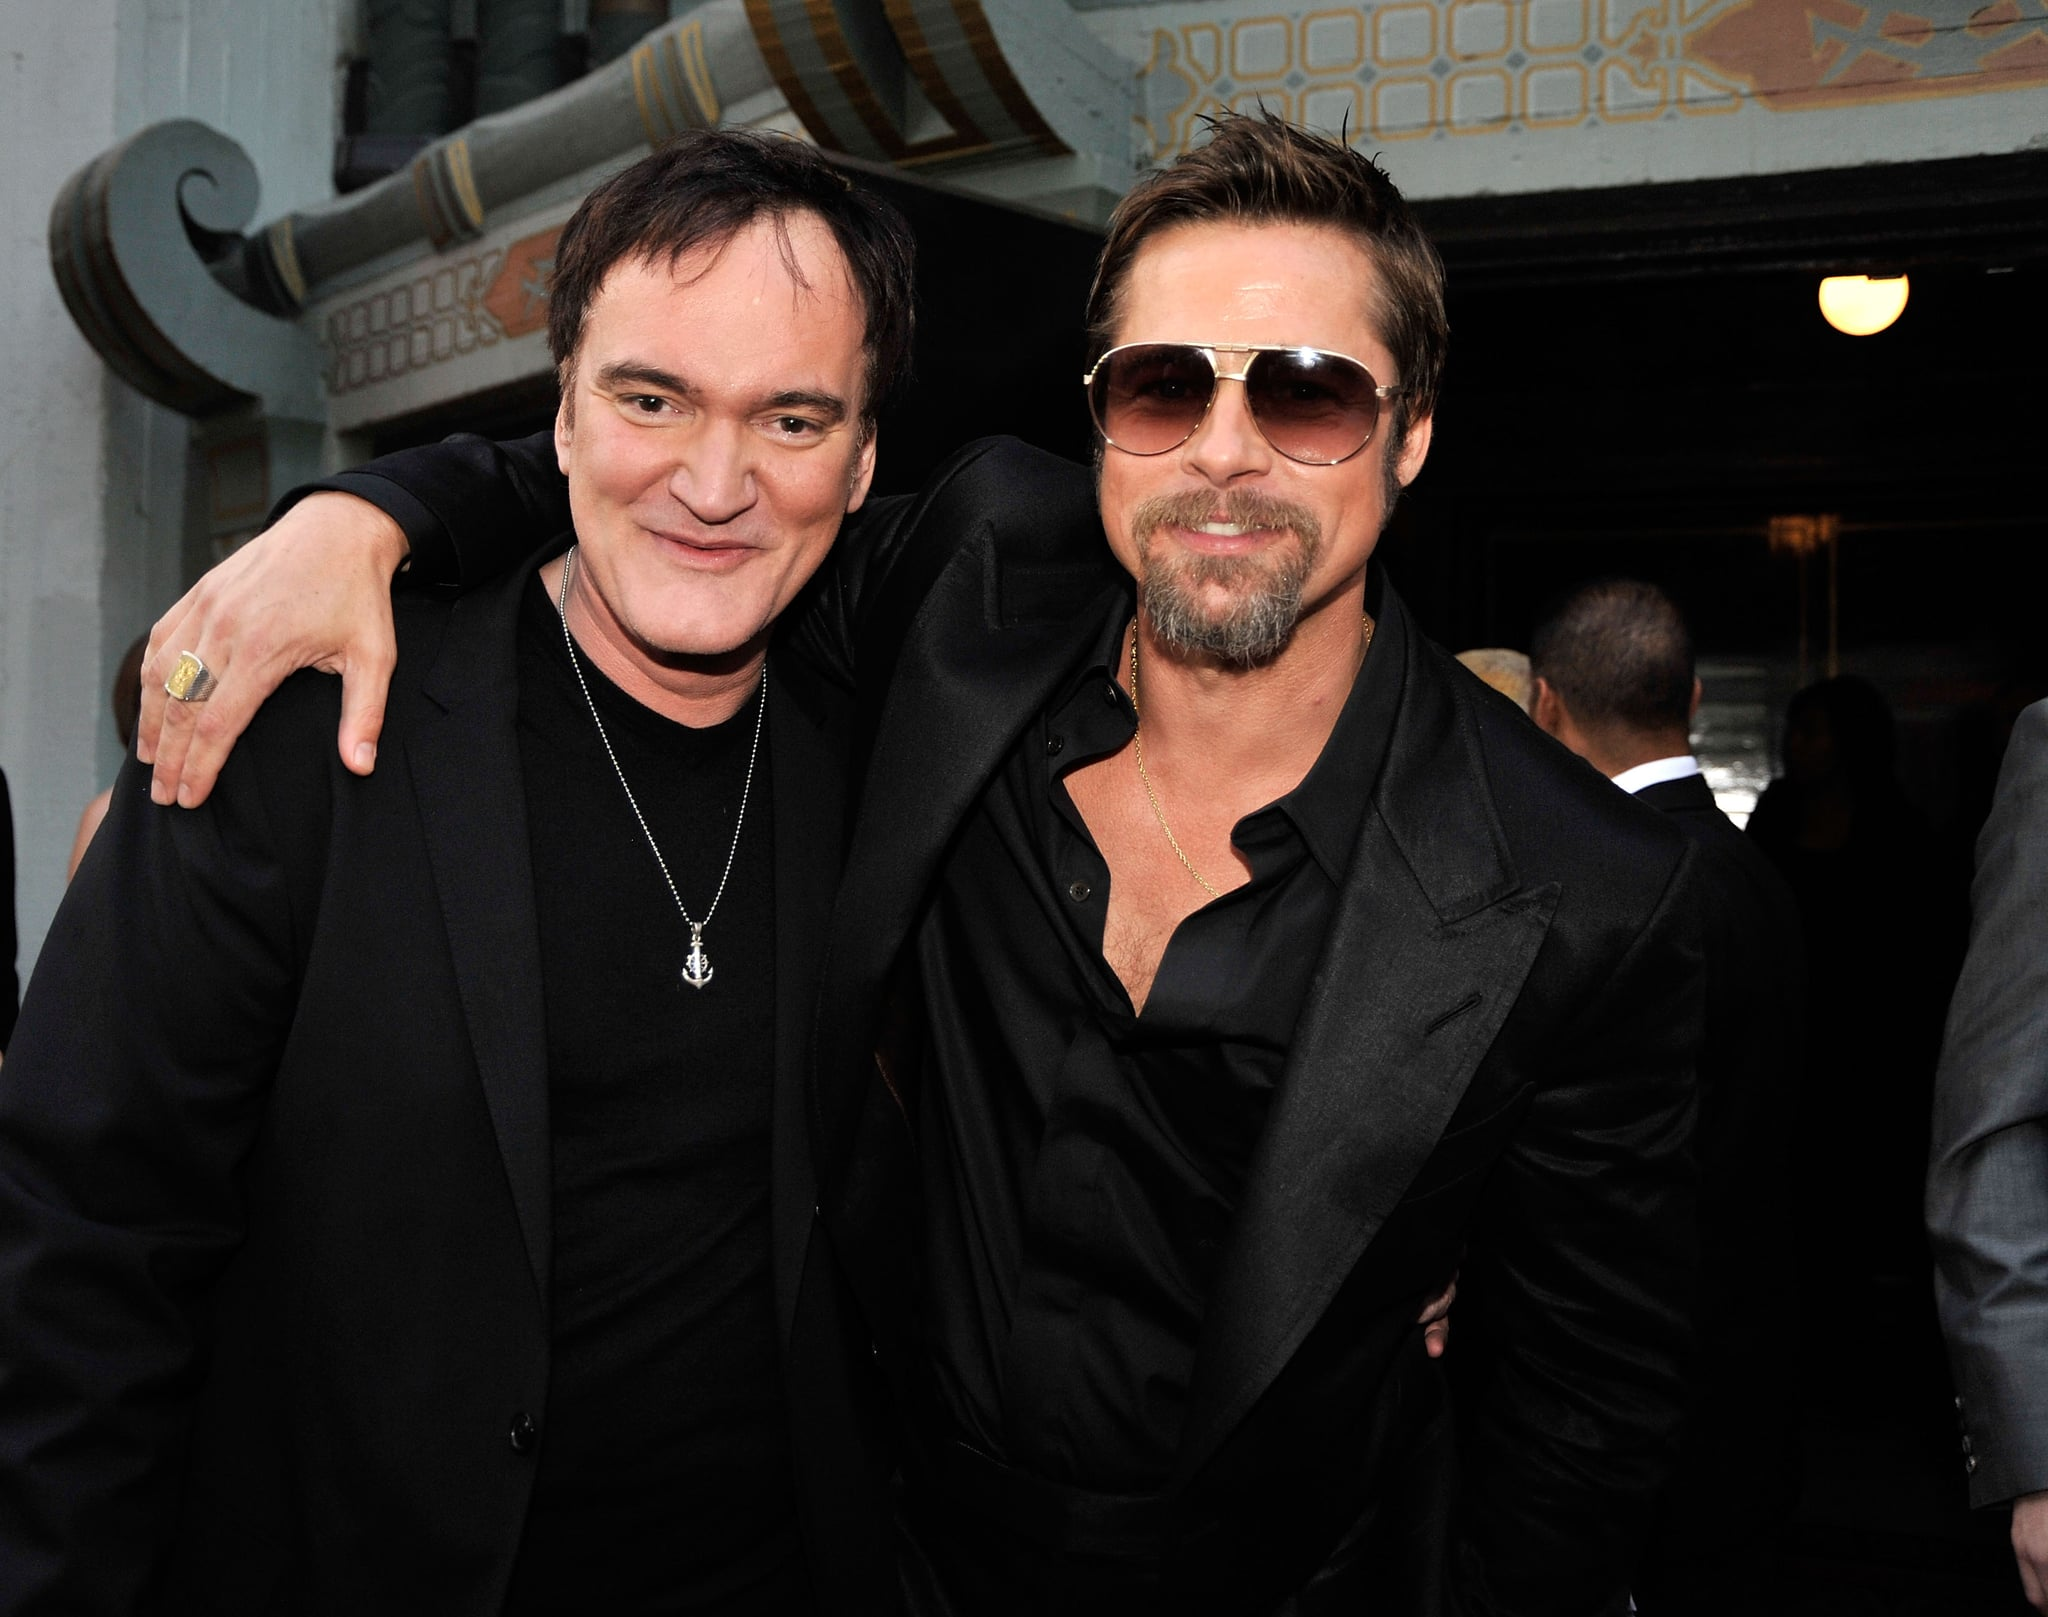 HOLLYWOOD - AUGUST 10:  (L-R) Director Quentin Tarantino and actor Brad Pitt arrive at the premiere of Weinstein Co.'s